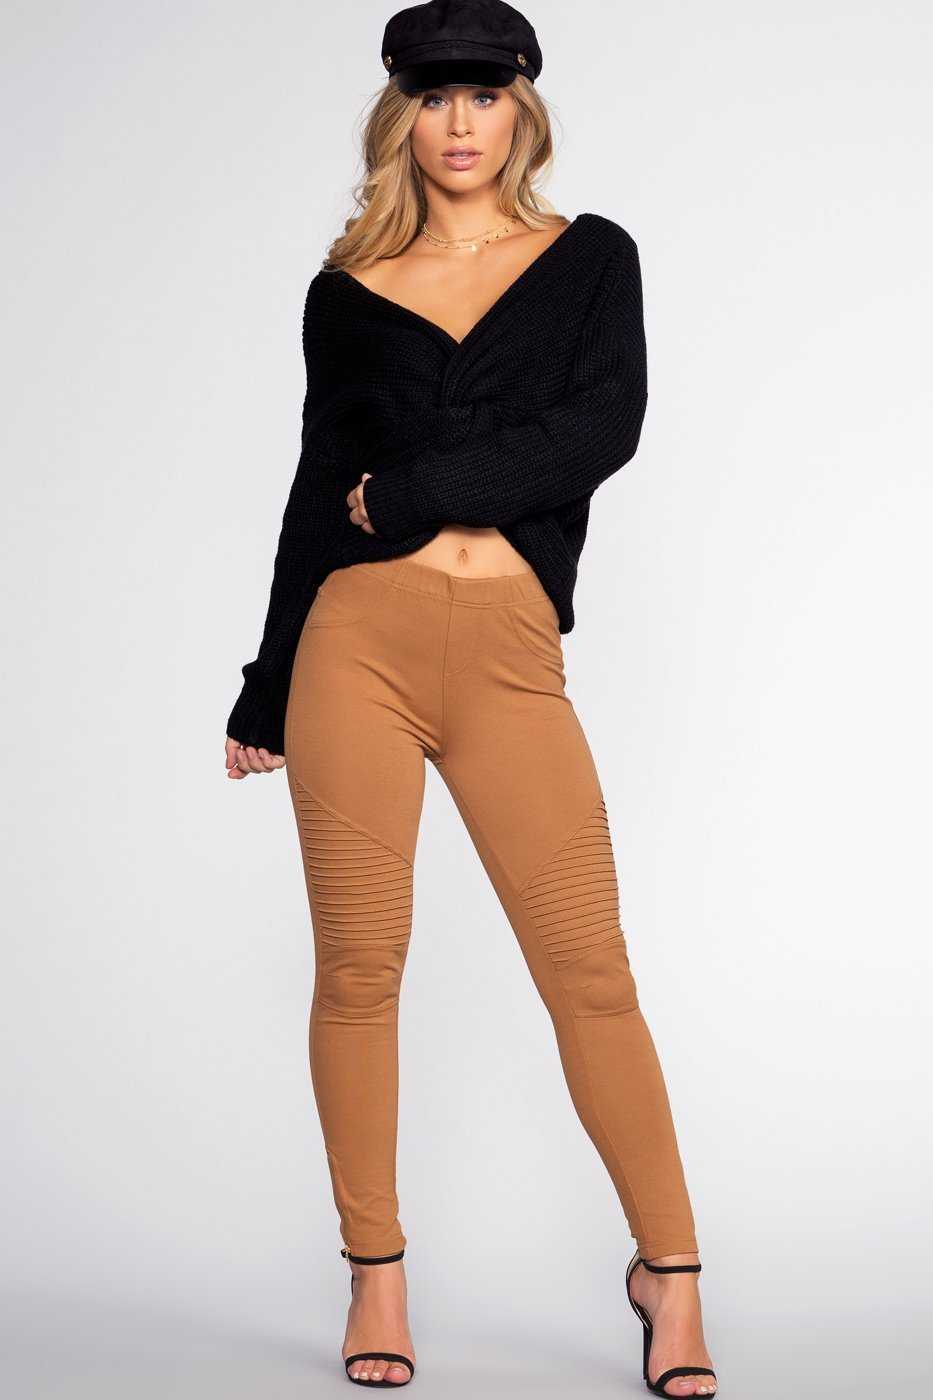 Leggings - Jaxon Moto Jeggings - Camel